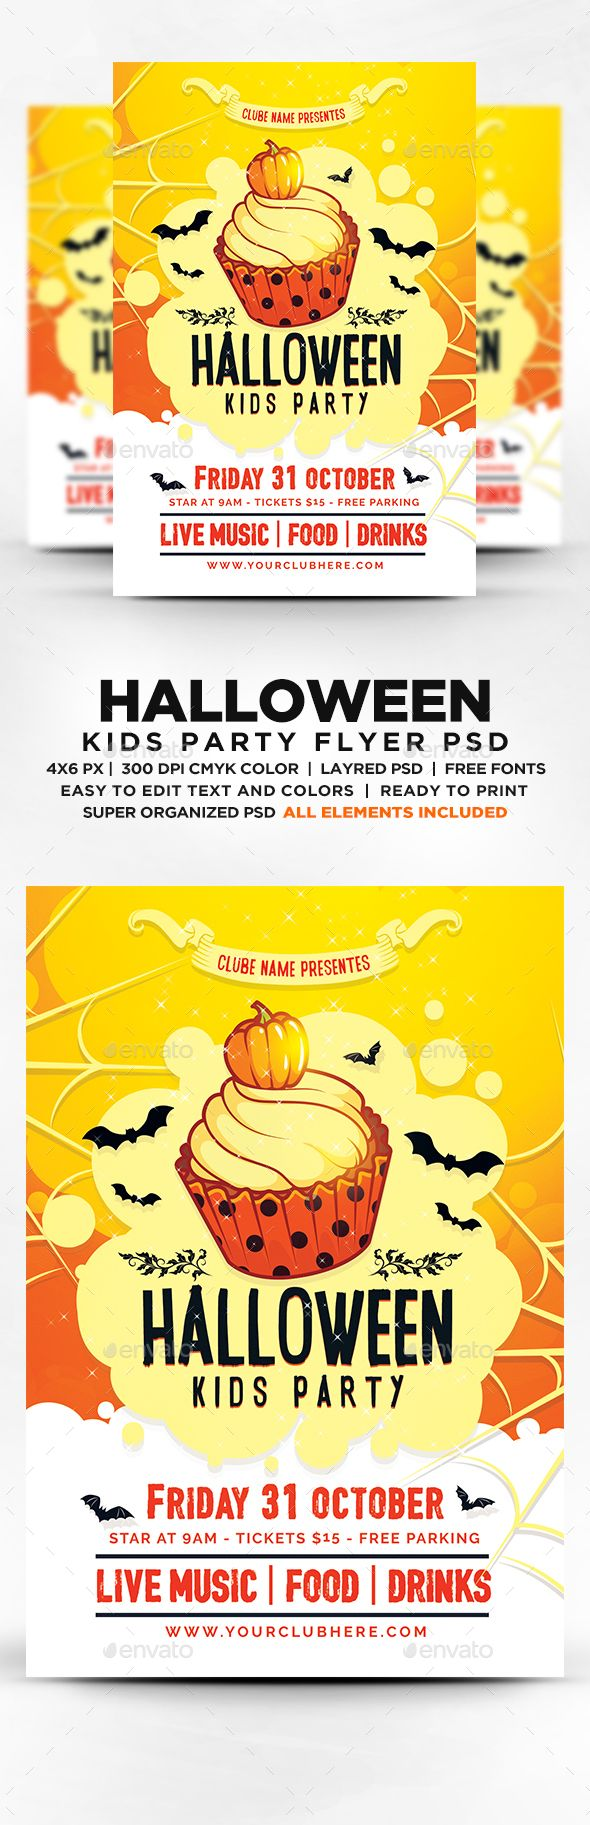 22 best Flyer // Halloween images on Pinterest